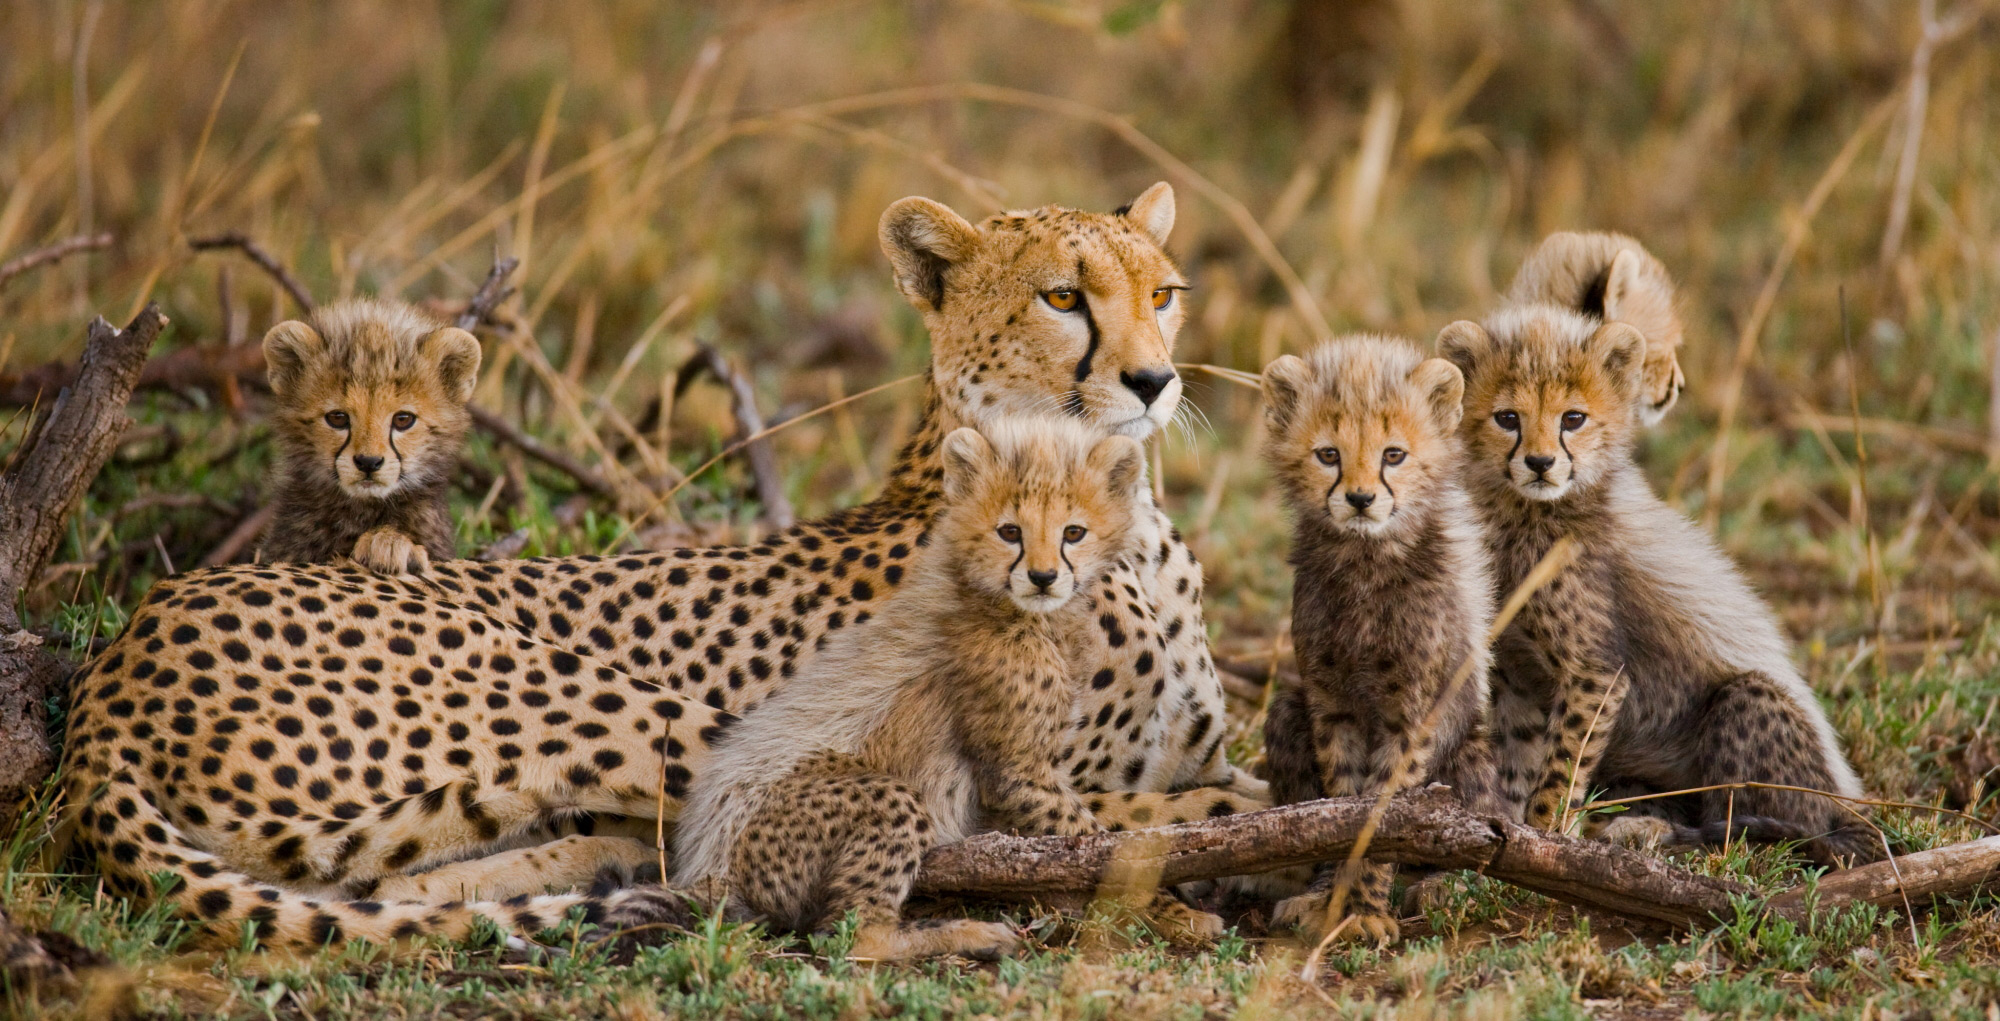 A cheetah mother with her cubs in Serengeti National Park, Tanzania